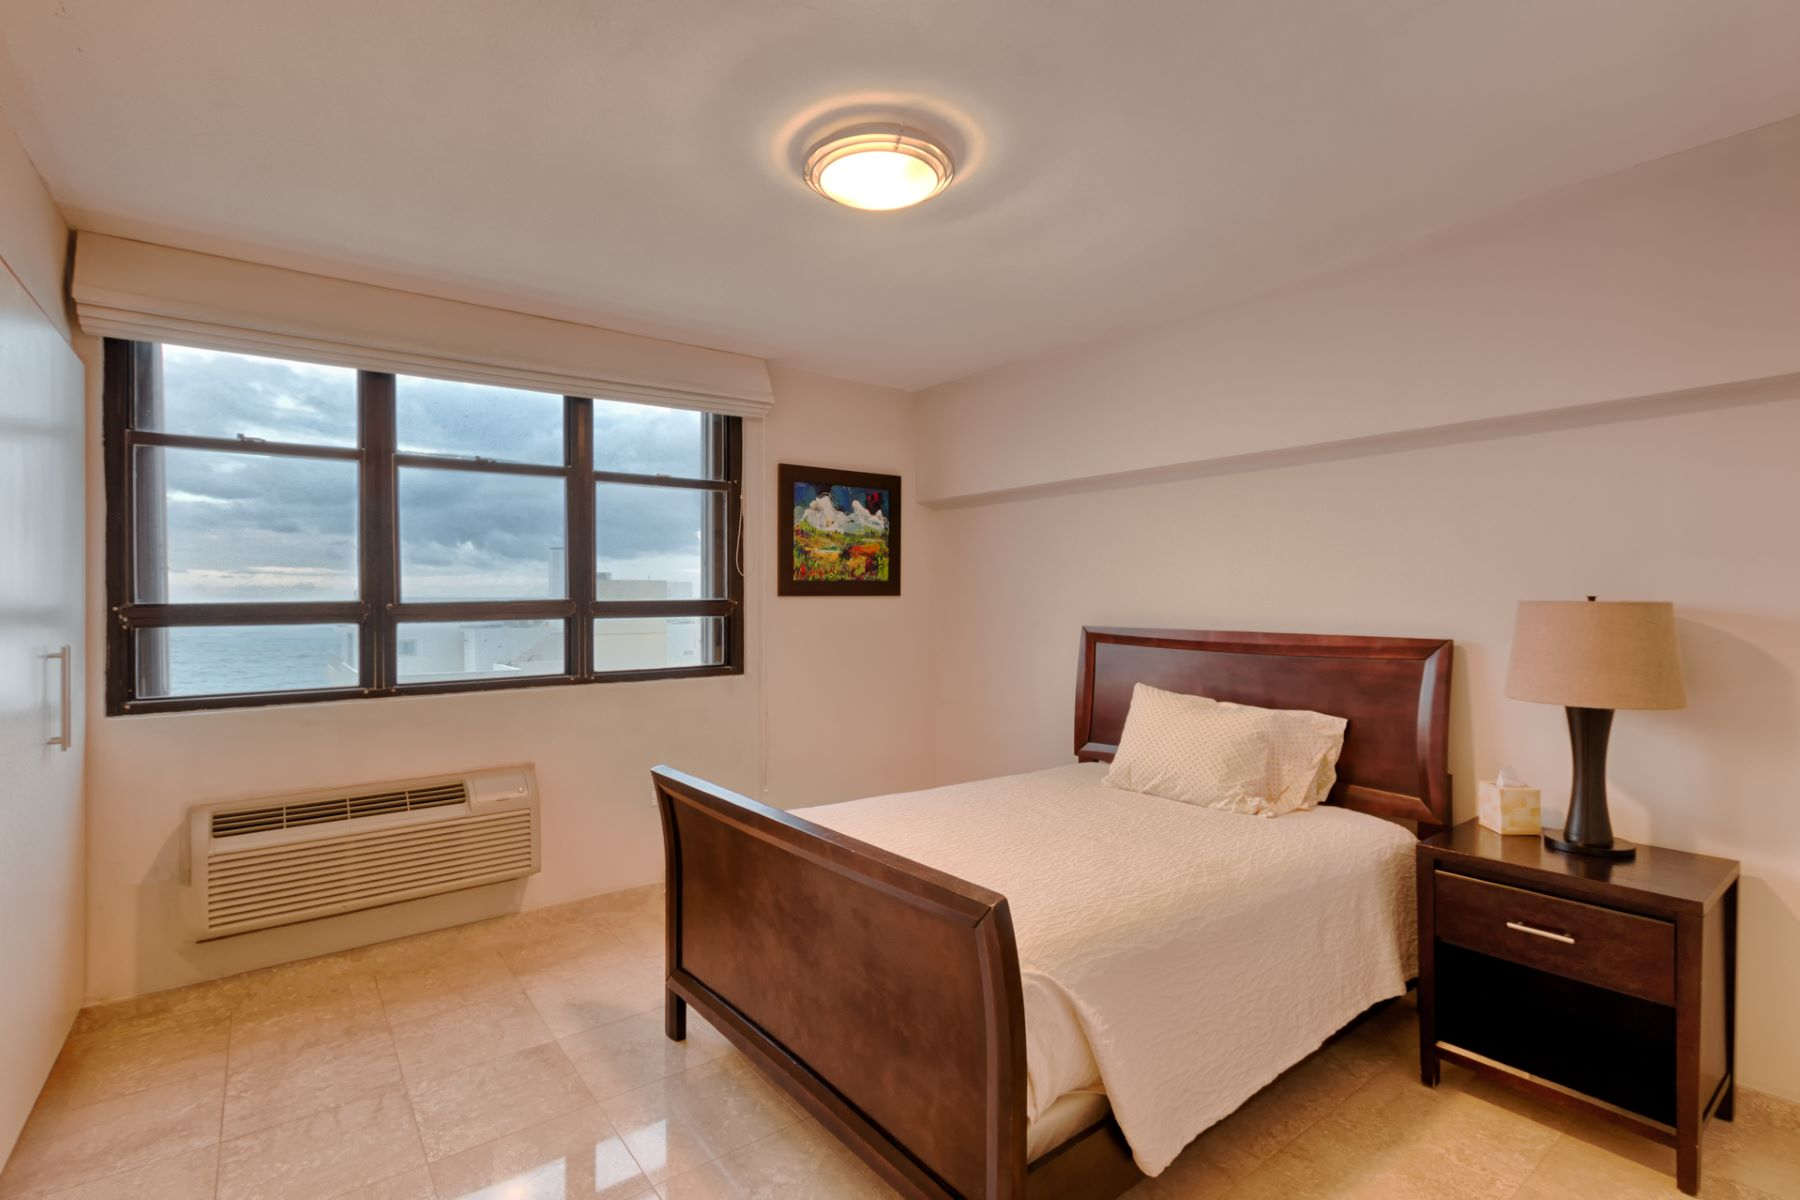 Additional photo for property listing at 14th Floor At Candina Sea Tower 3 Calle Candina Apt. 1401 San Juan, Puerto Rico 00907 Puerto Rico